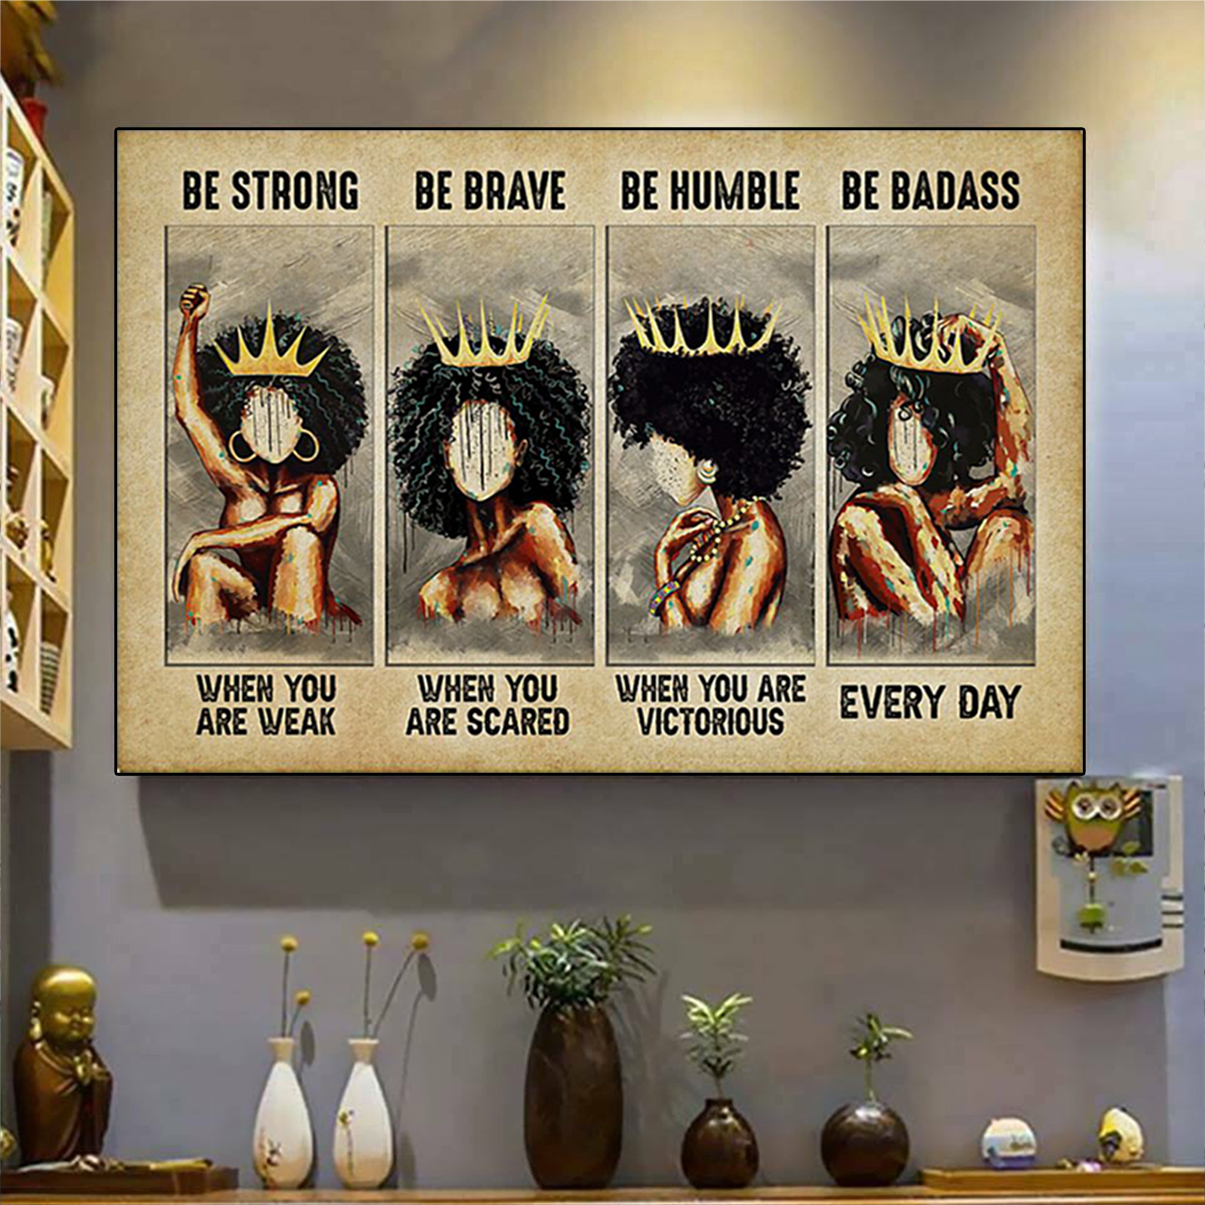 Black women queen be strong be brave be humble be badass poster A3